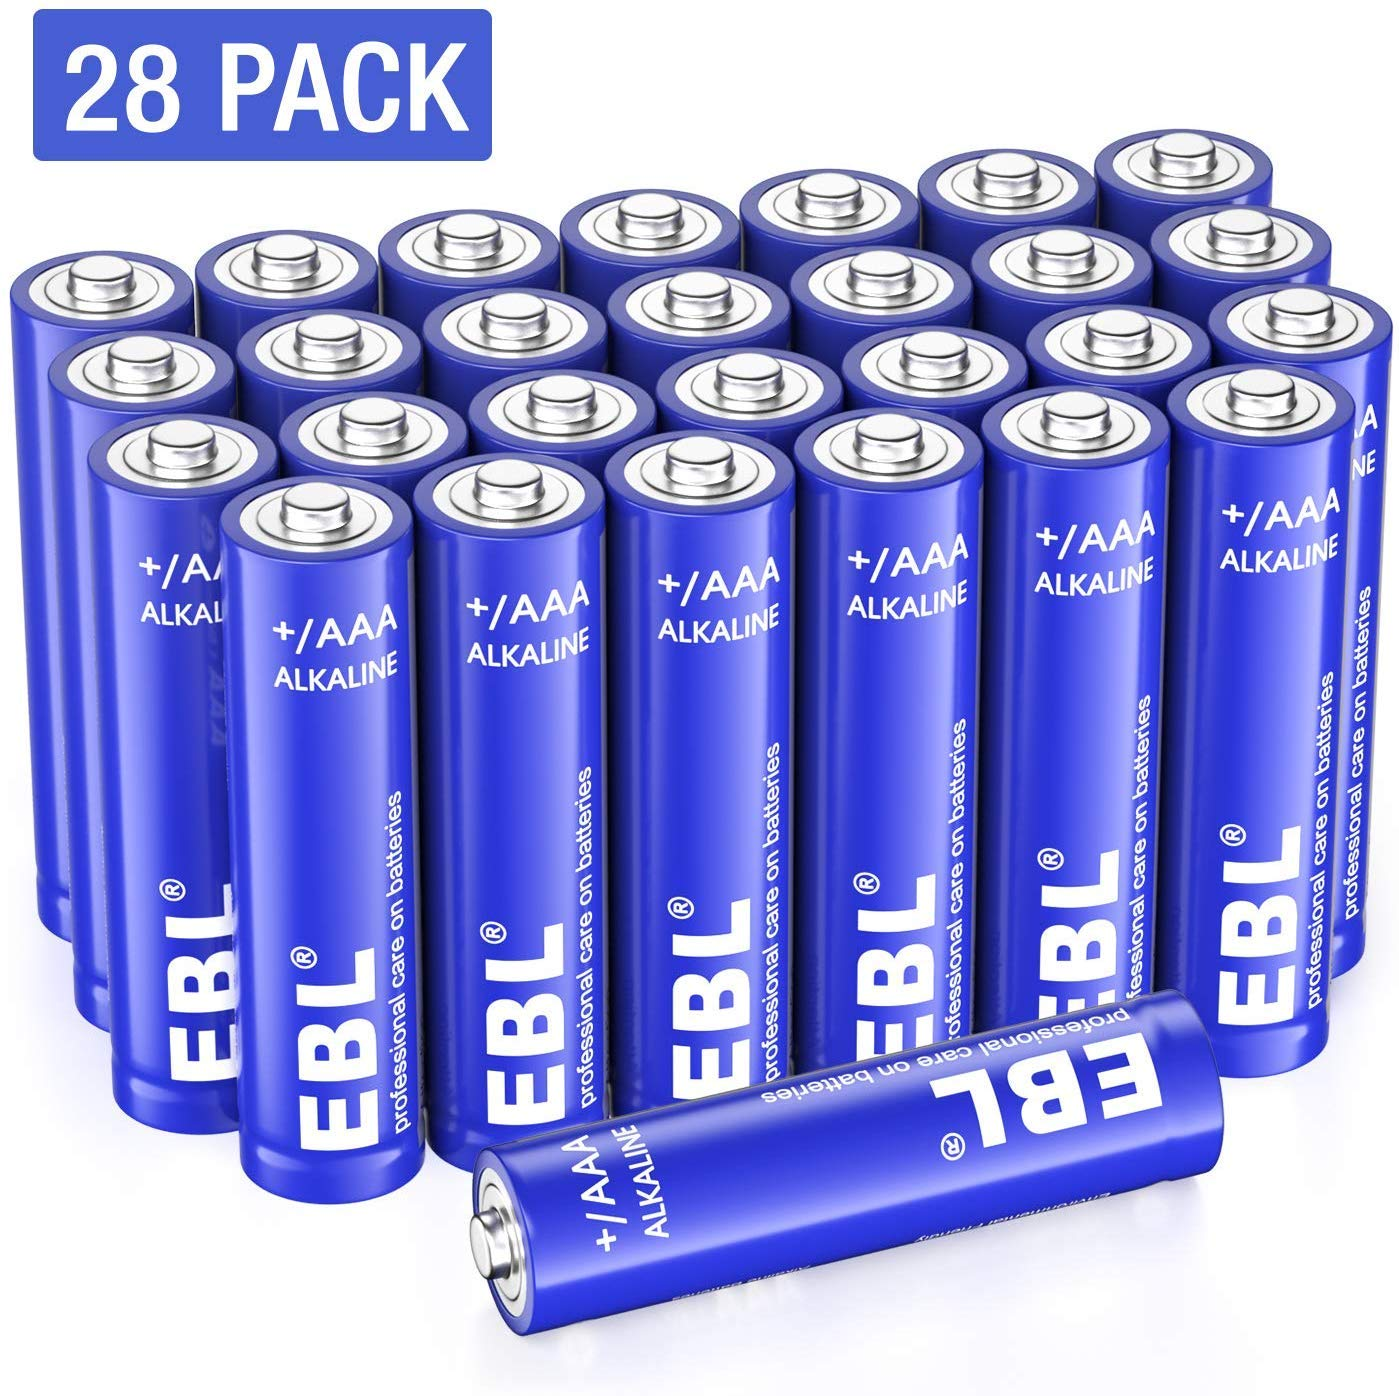 Great pack of batteries, a must have item!